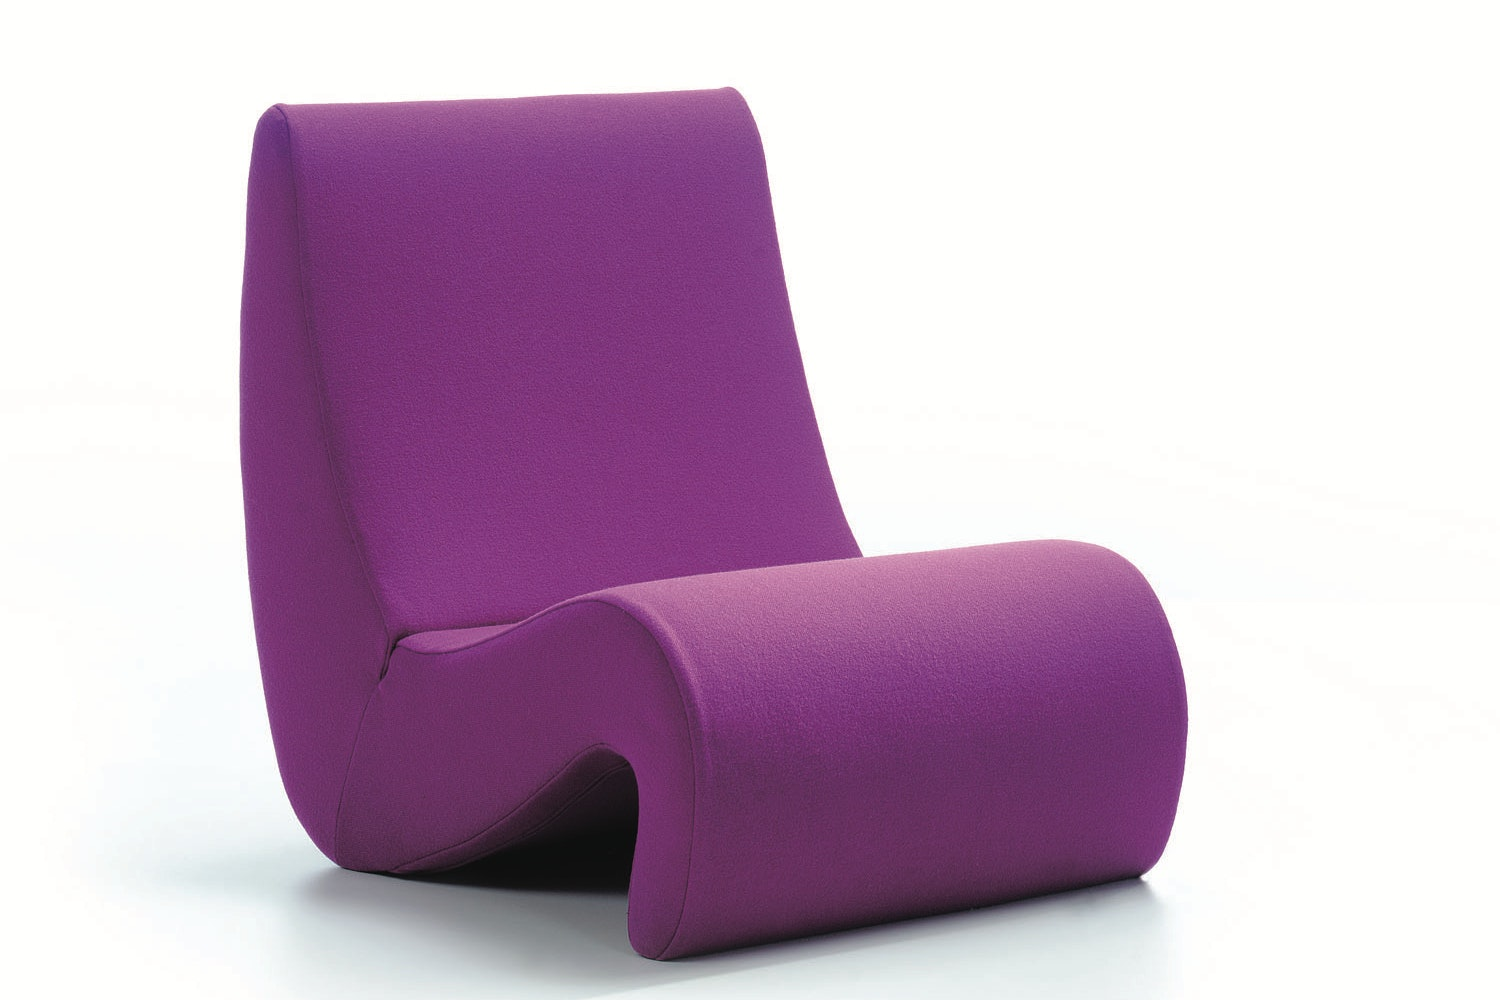 Amoebe & Amoebe Highback Armchair by Verner Panton for Vitra